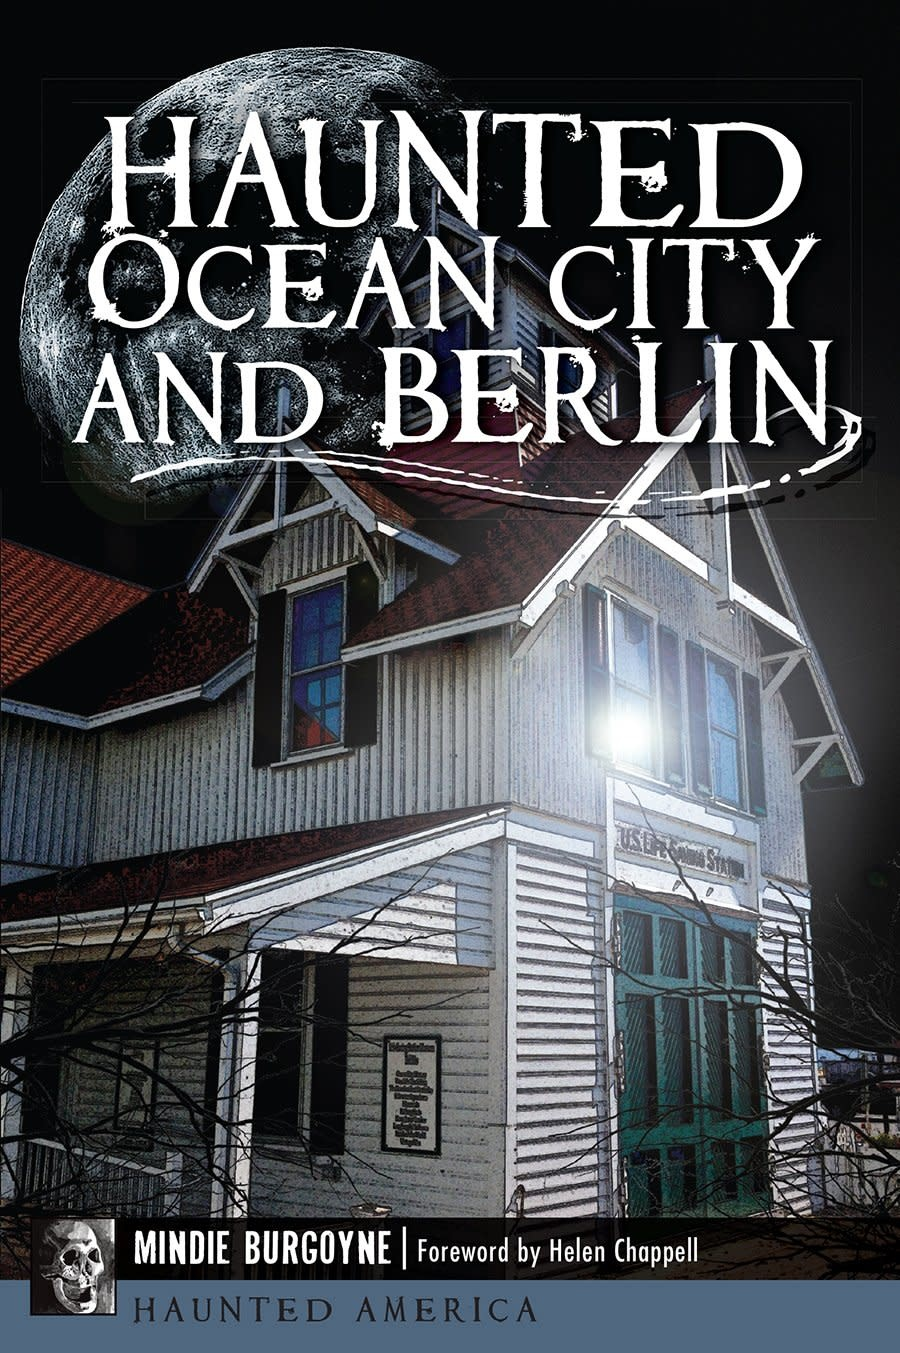 Burgoyne- Haunted Ocean City and Berlin